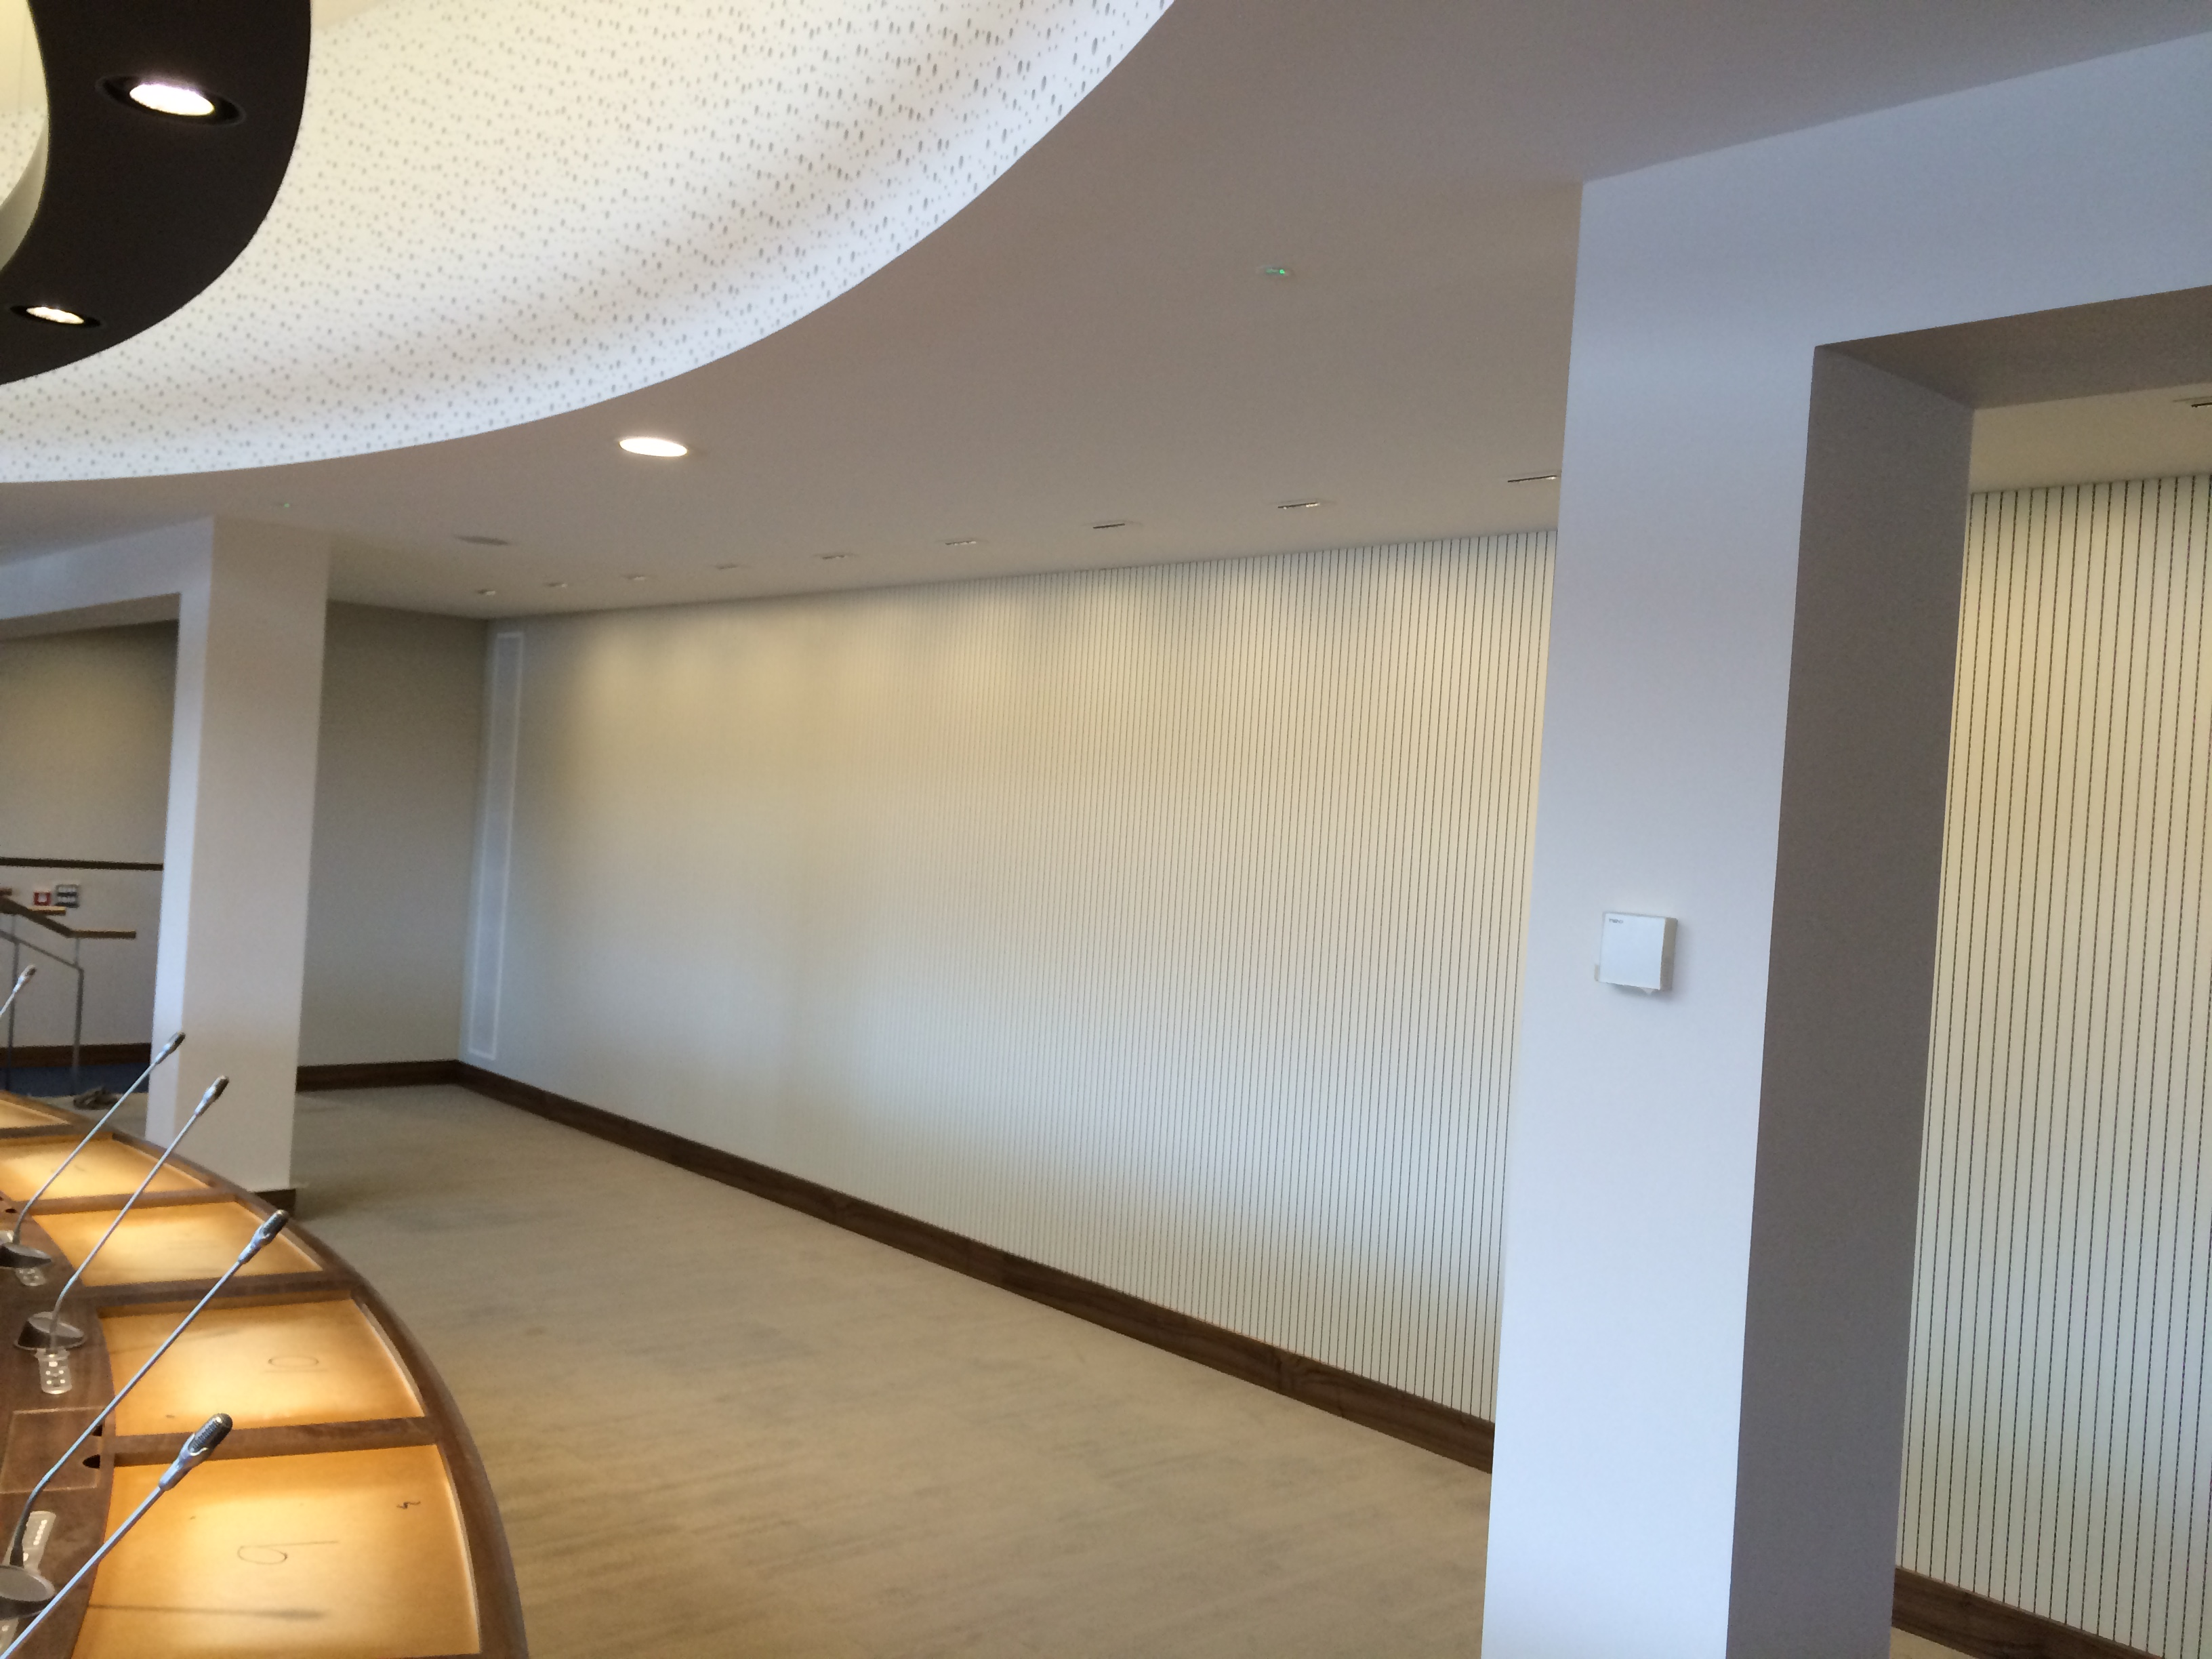 Council Chambers, Armagh City Banbridge Craigavon Council - Council Chambers - Topakustik Soundproofing Wood Acoustic Panels - Wall Panelling